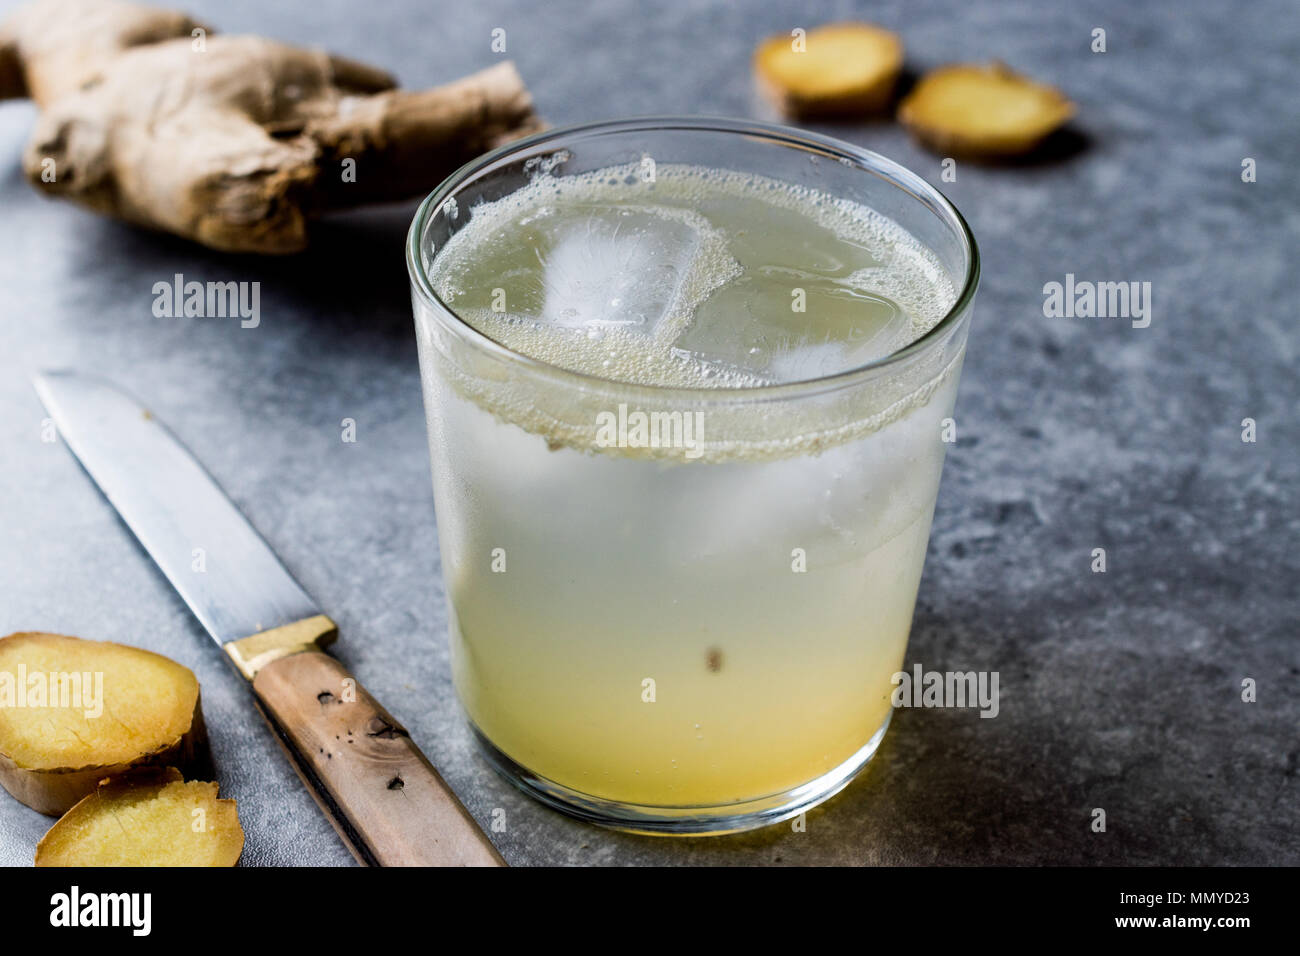 Organic Ginger Ale Soda (Tonic) in Glass Ready to Drink. Beverage Concept. - Stock Image